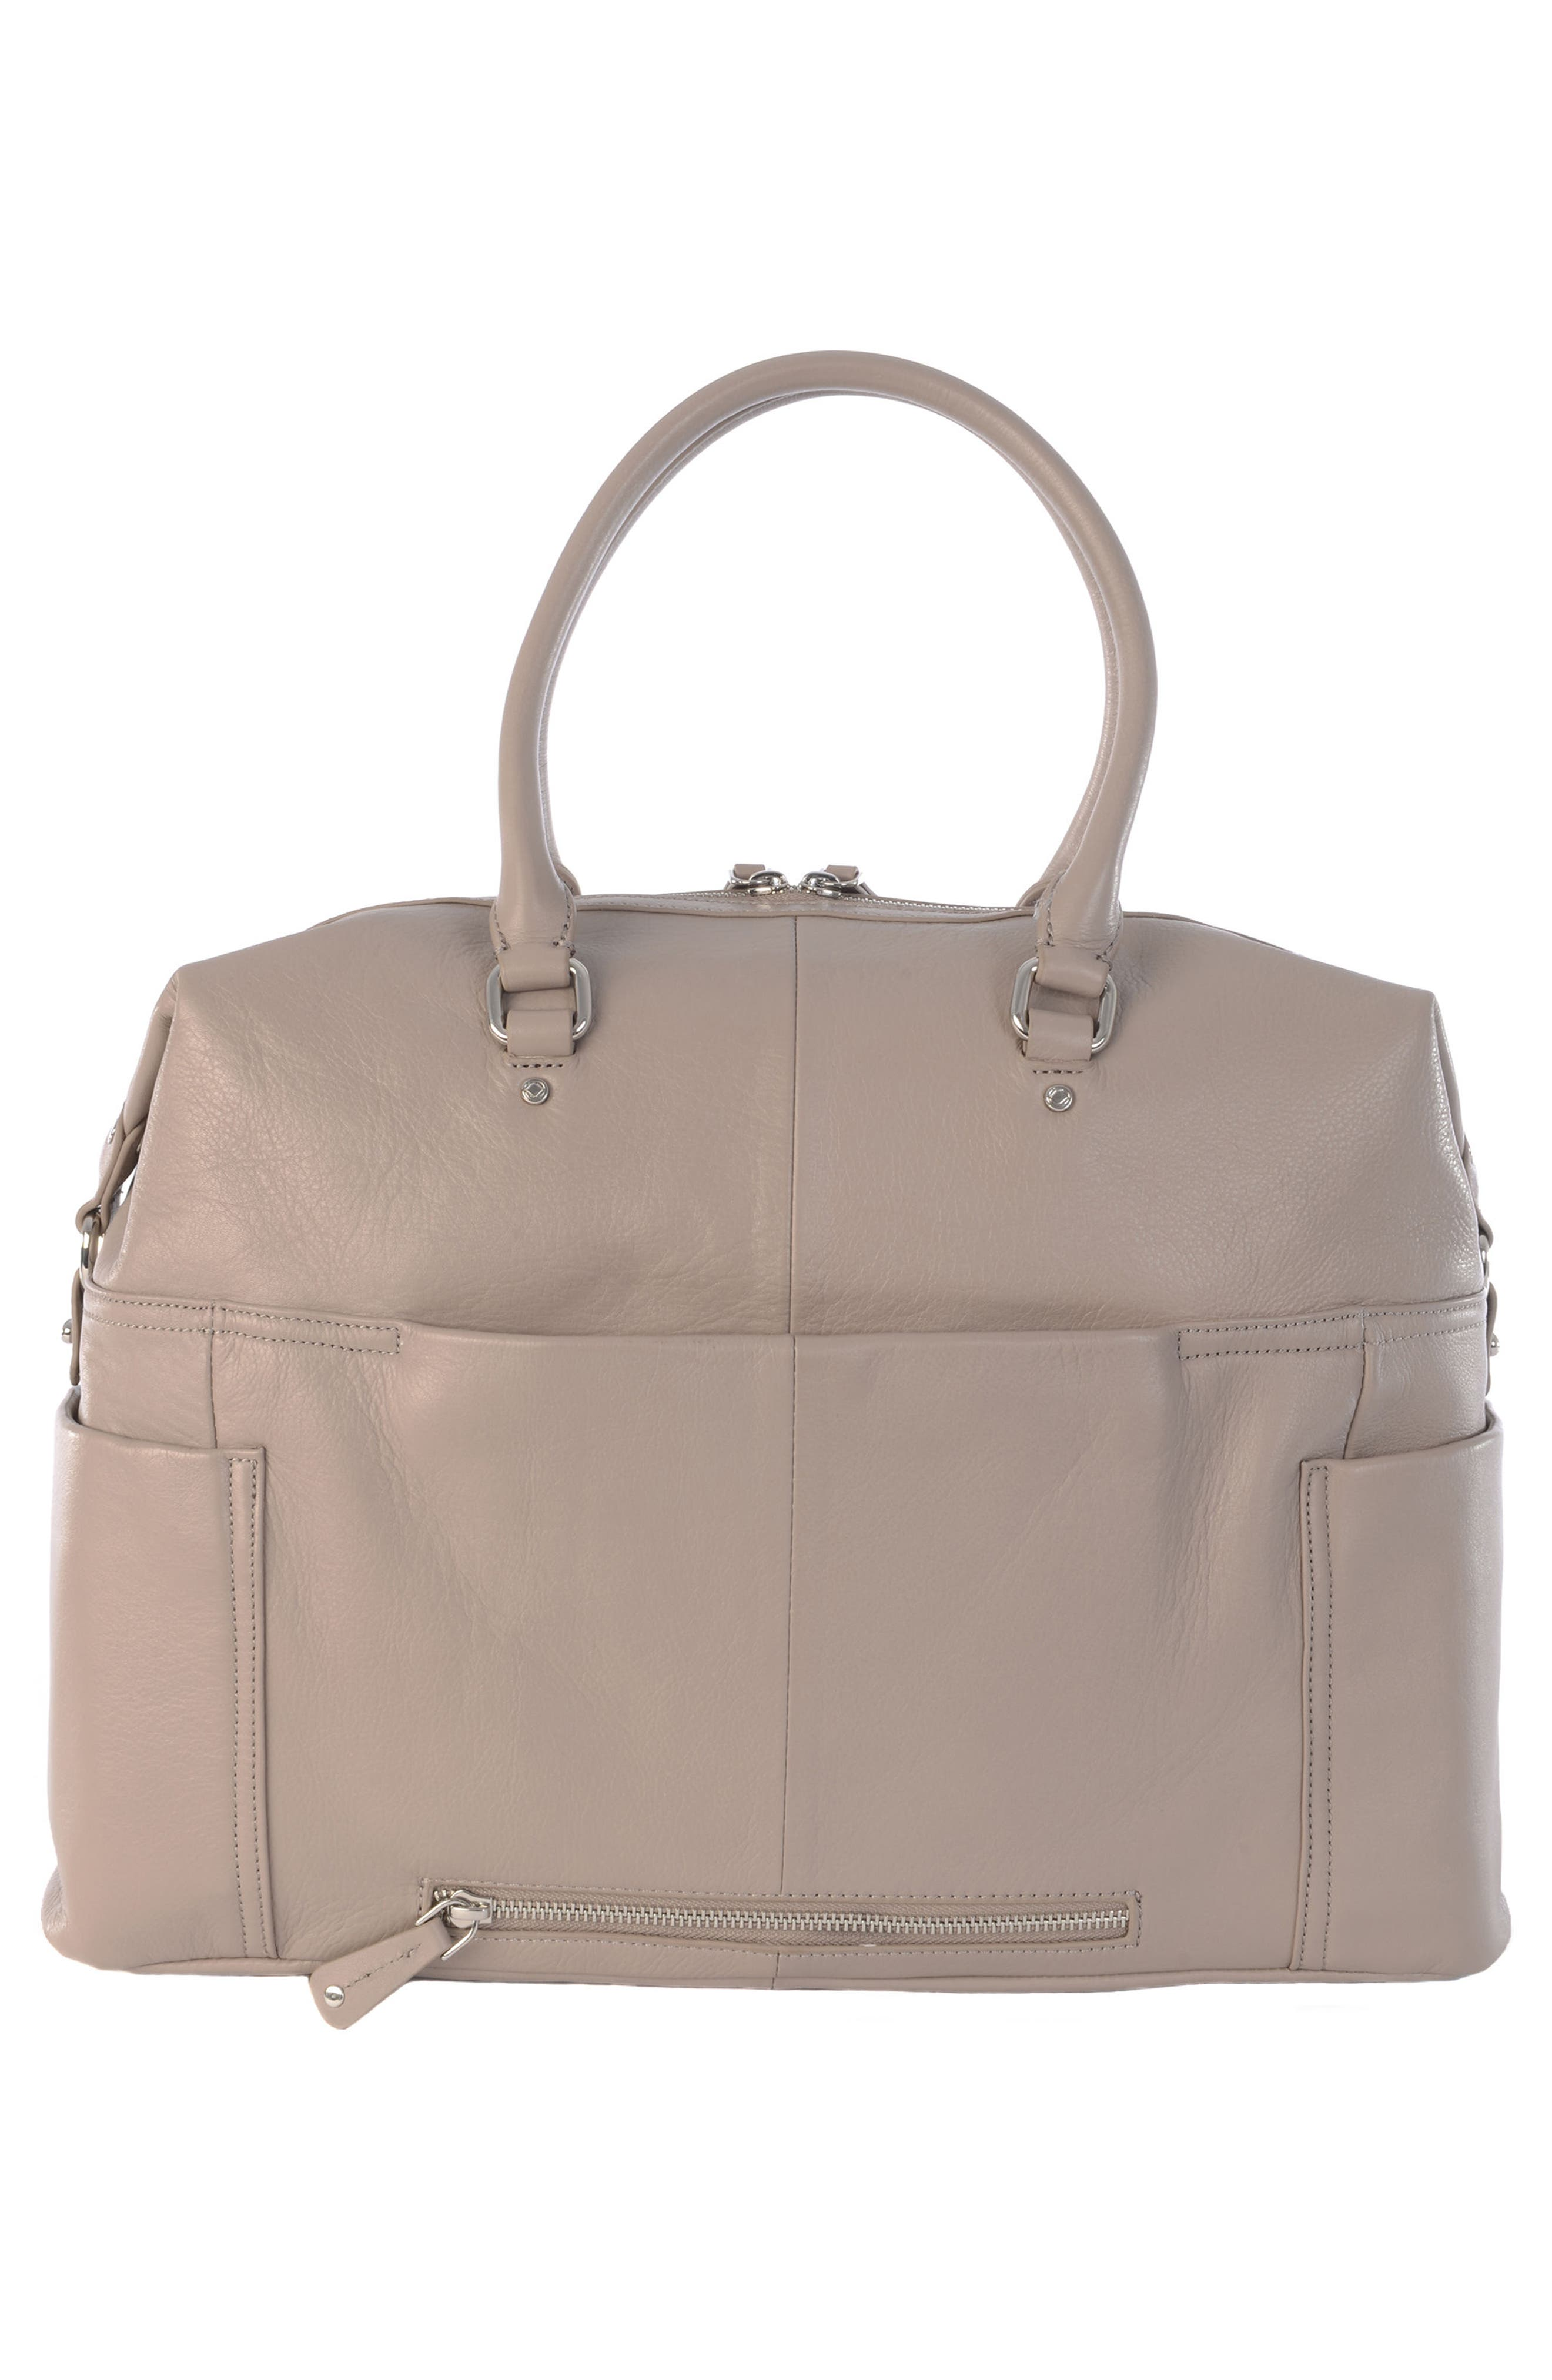 Thea Leather Satchel,                             Alternate thumbnail 12, color,                             Warm Grey/ Silver